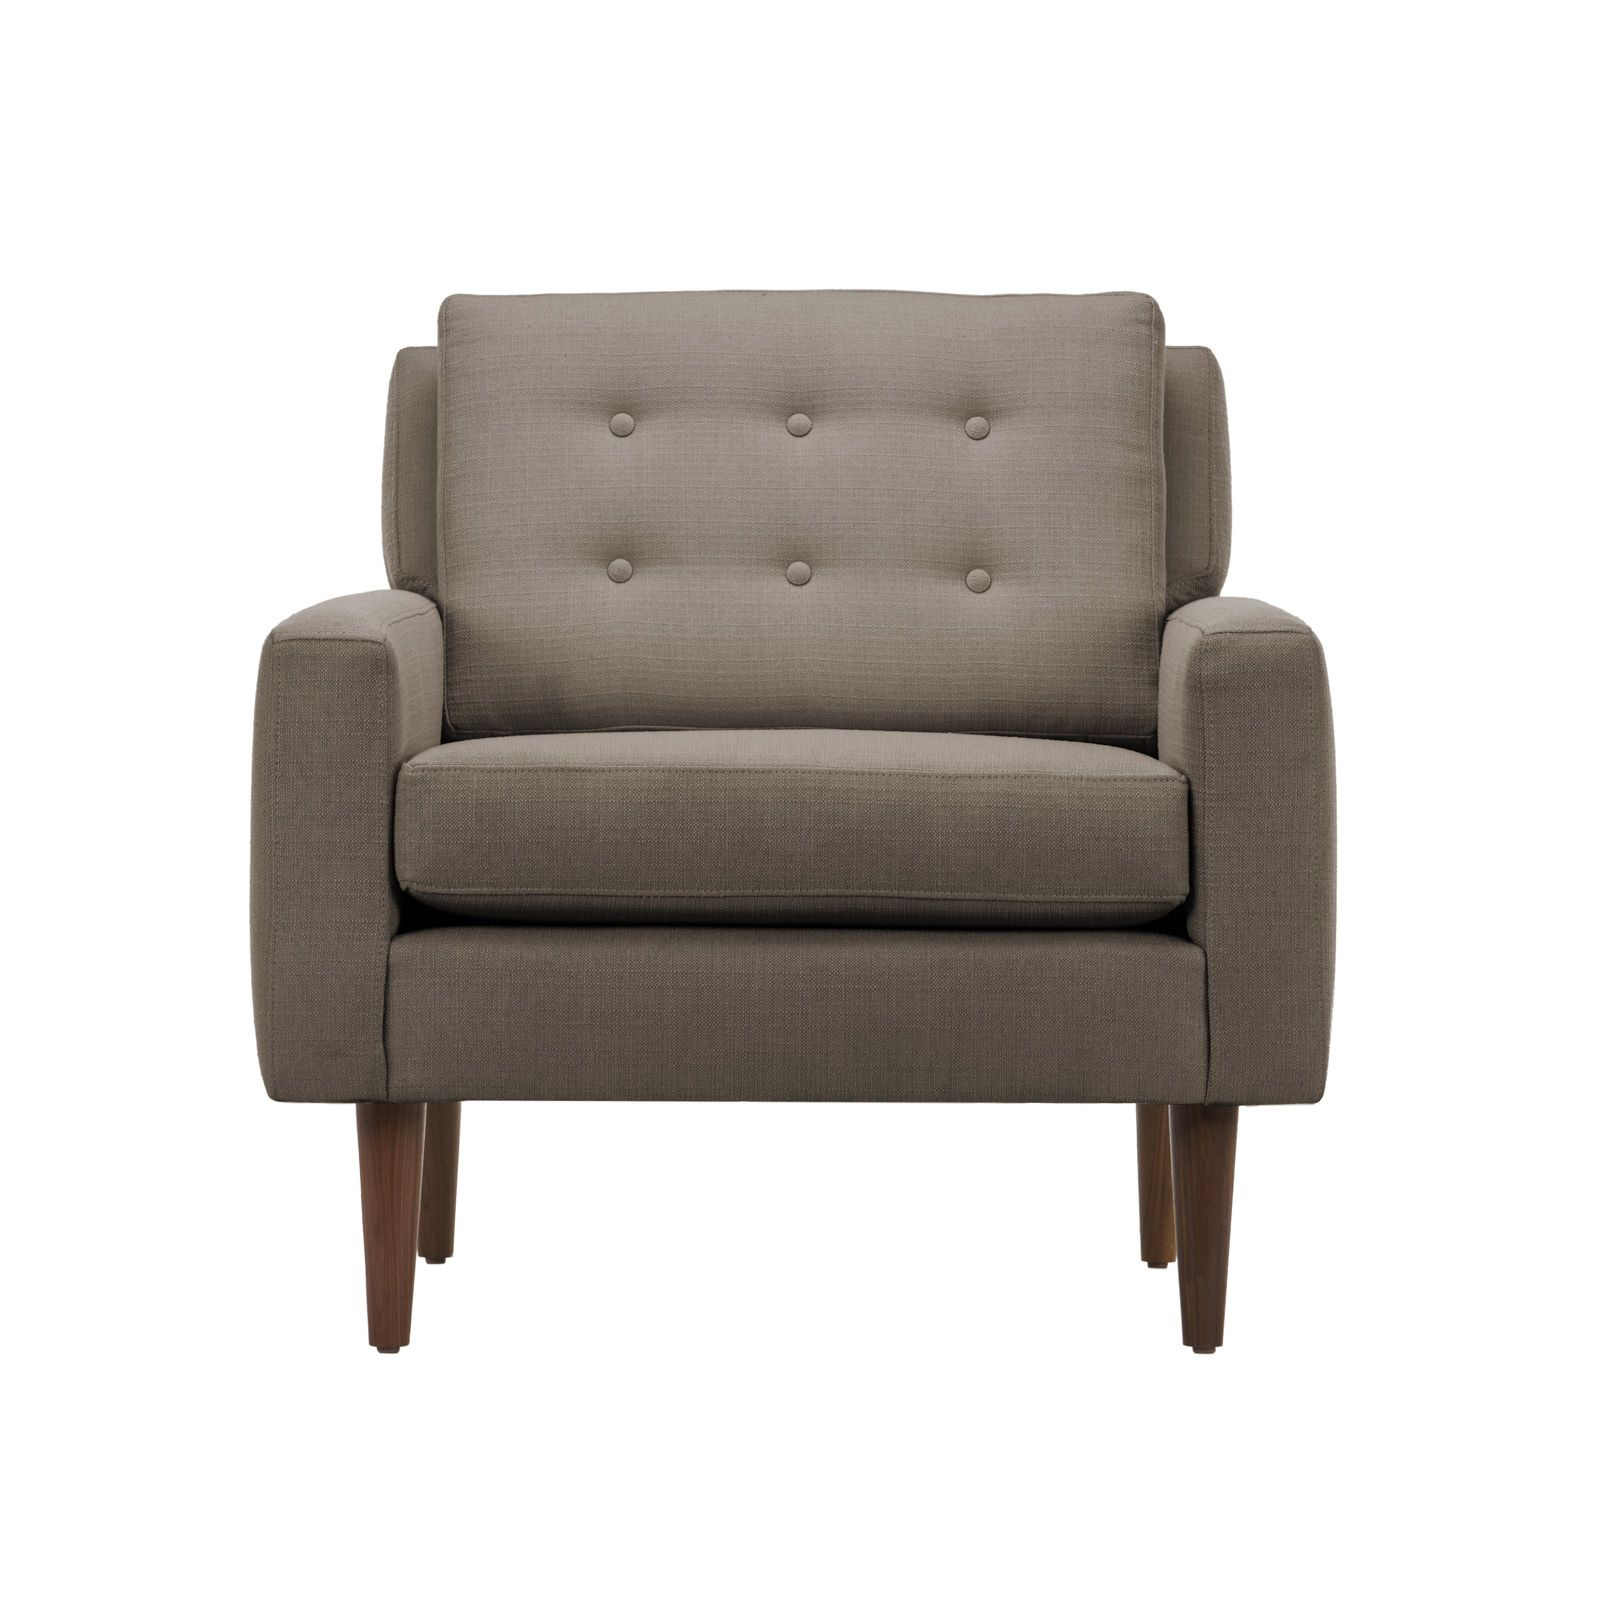 Allaire Chair